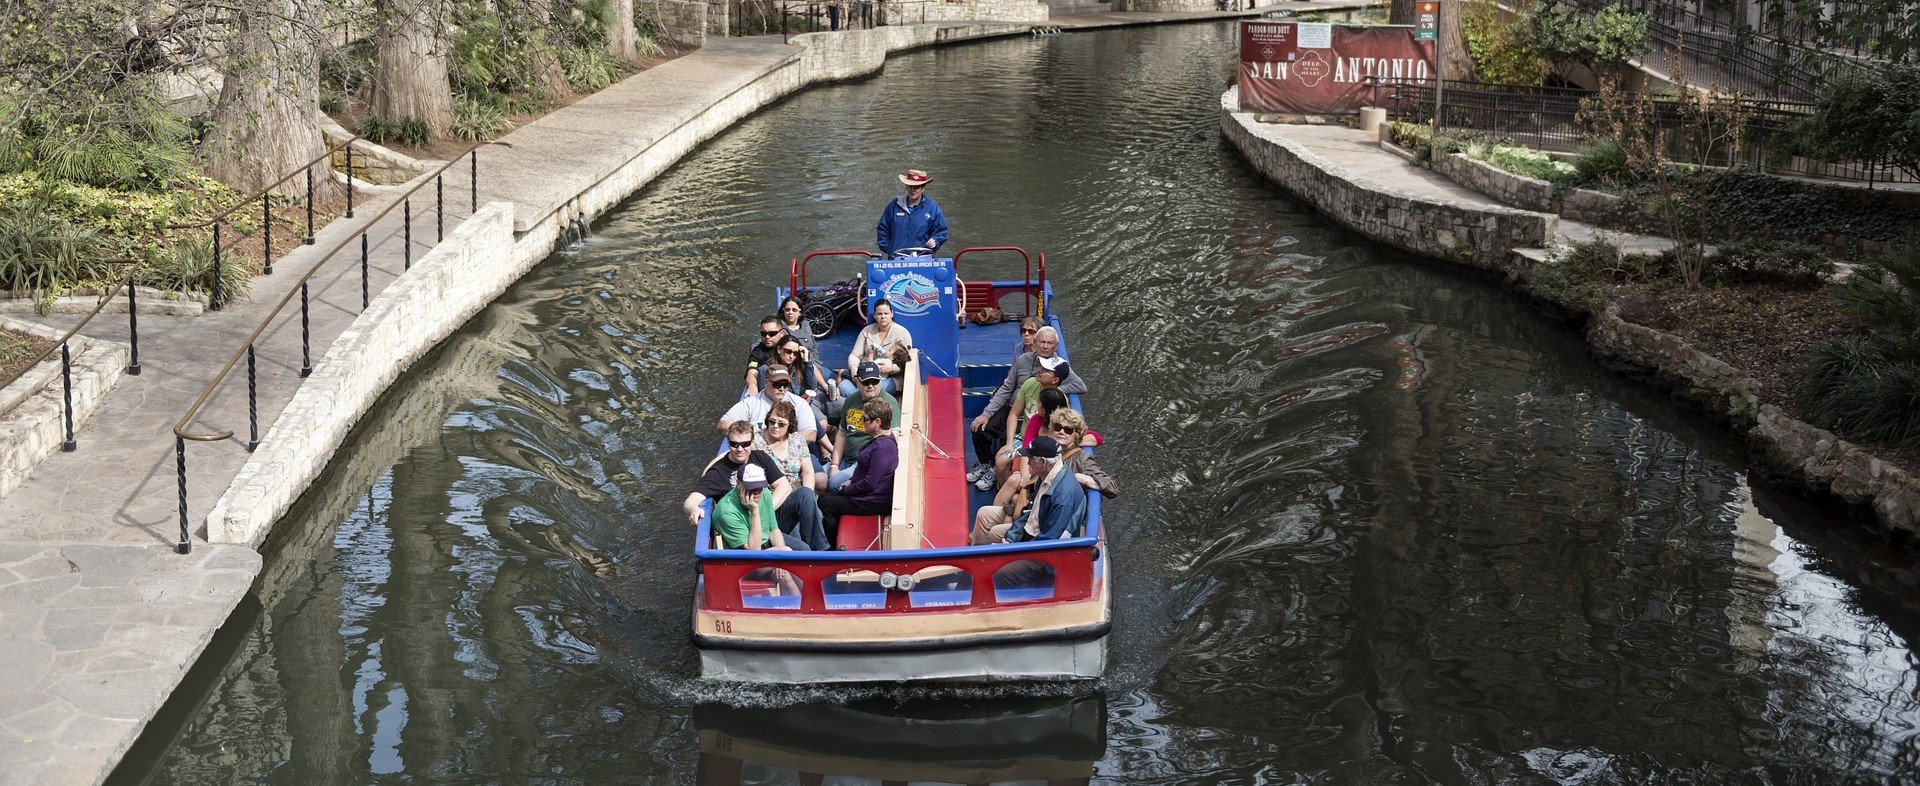 Boat Ride in San Antonio